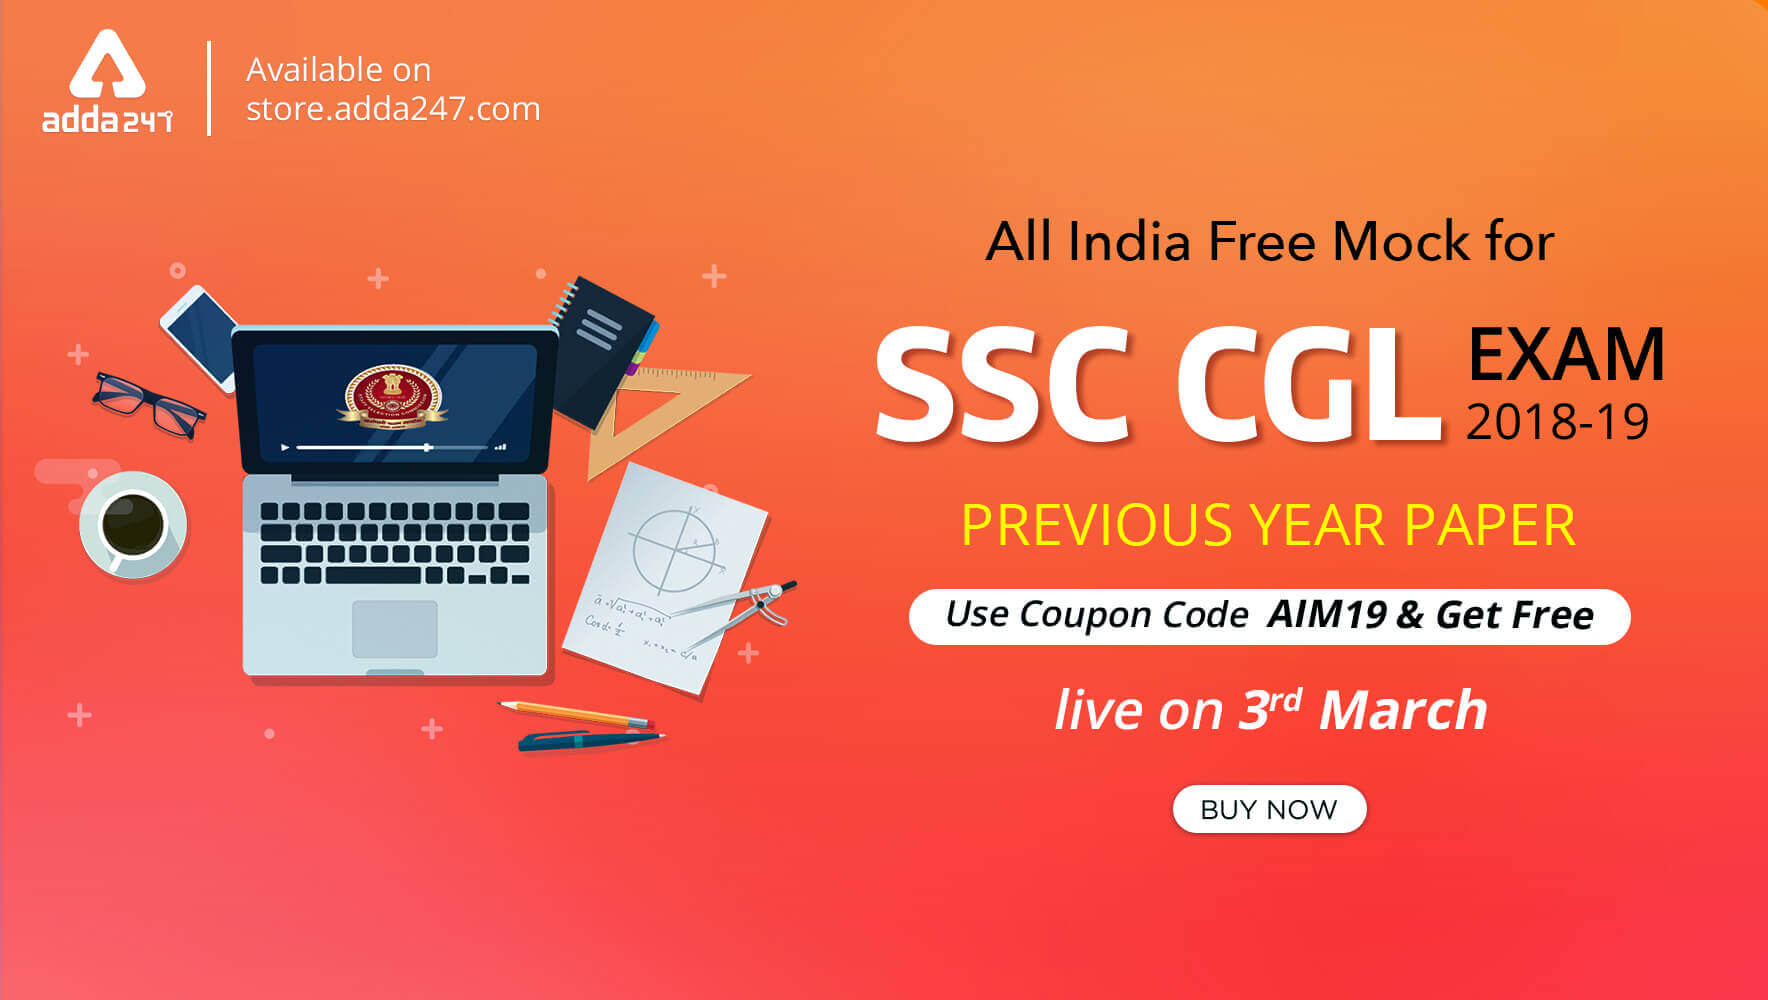 All India Mock Test : SSC CGL Previous Year Paper